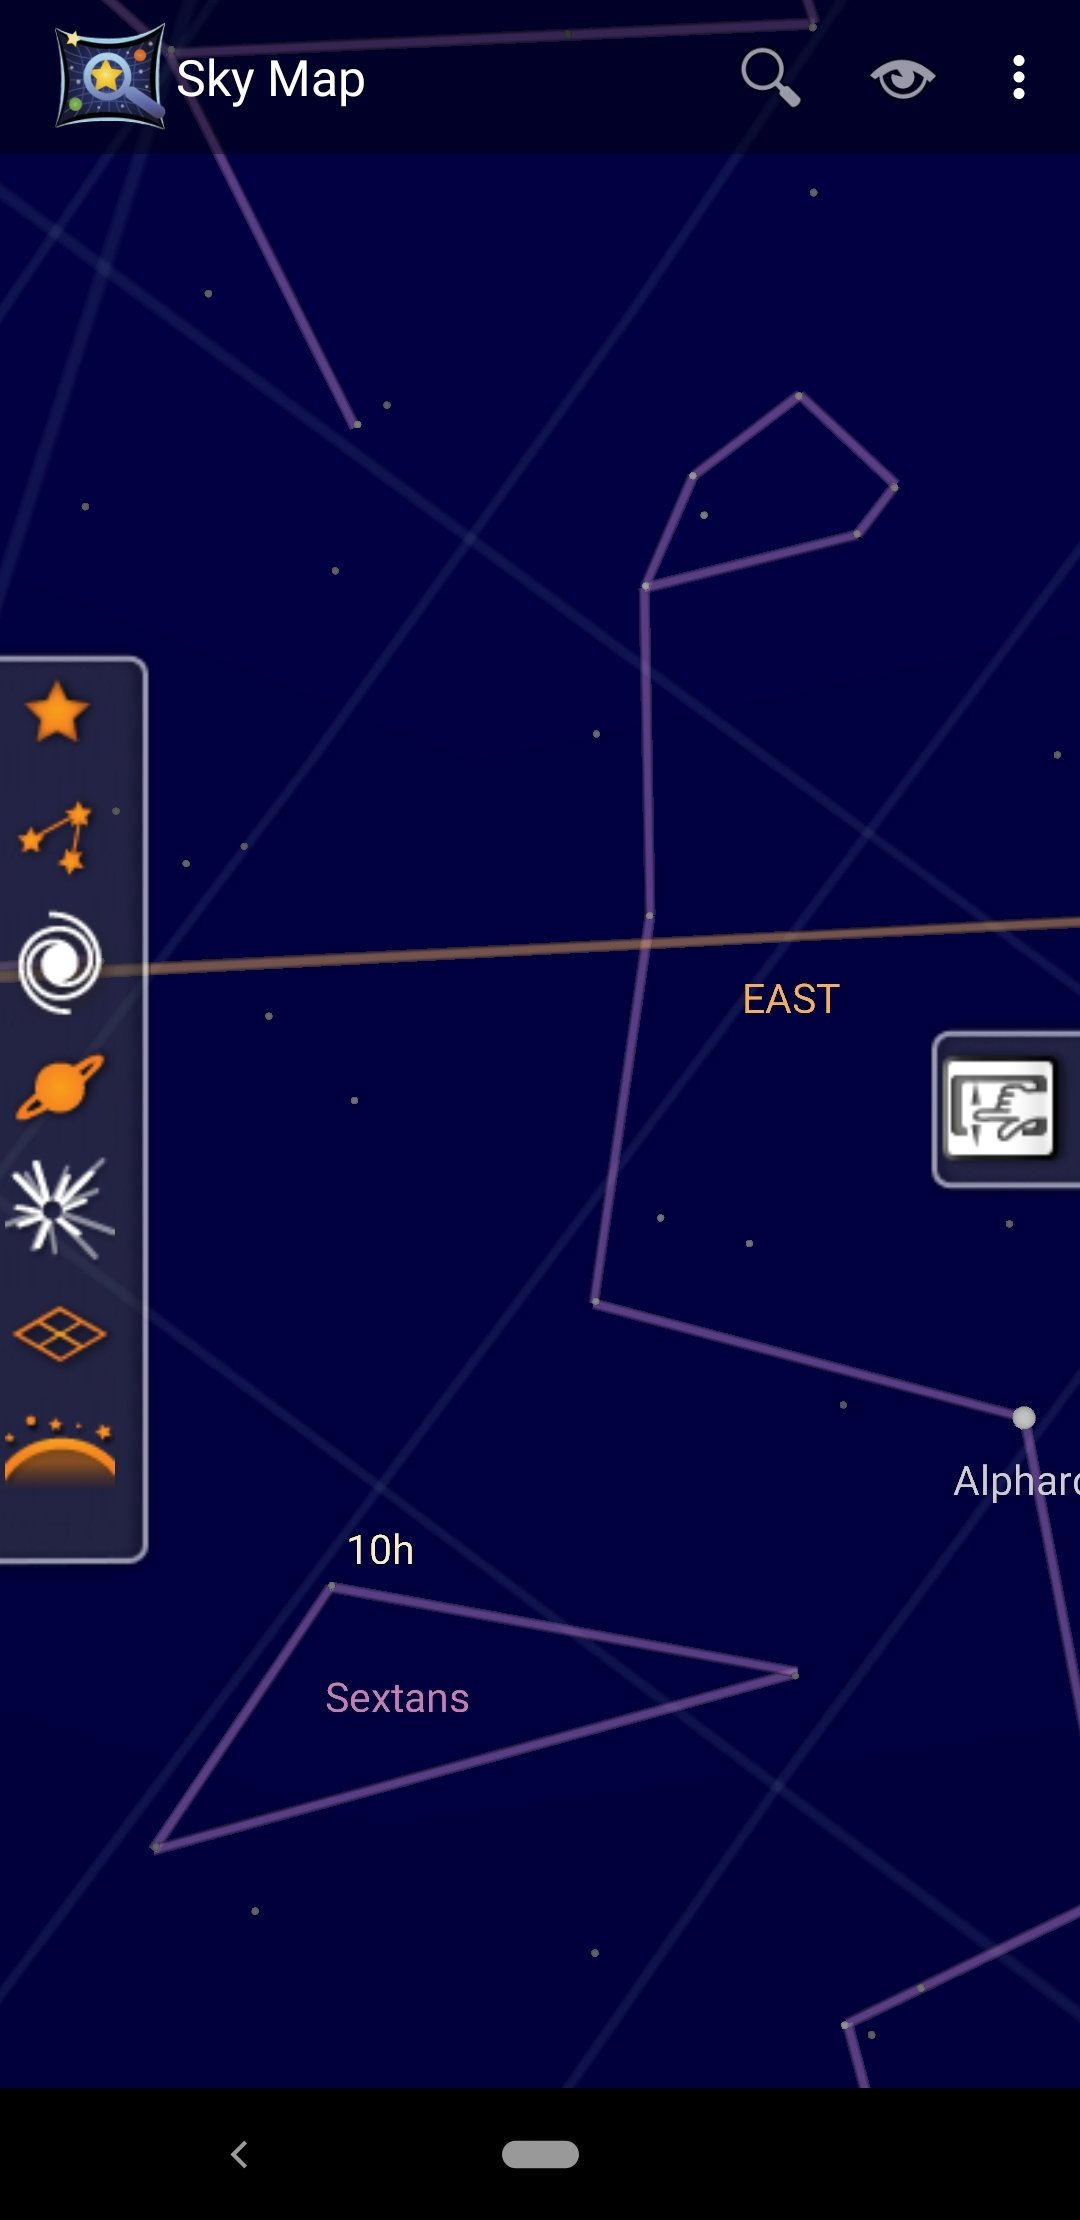 Sky Map 1.9.2 - Download für Android APK Kostenlos Download Google Sky Map For Android on